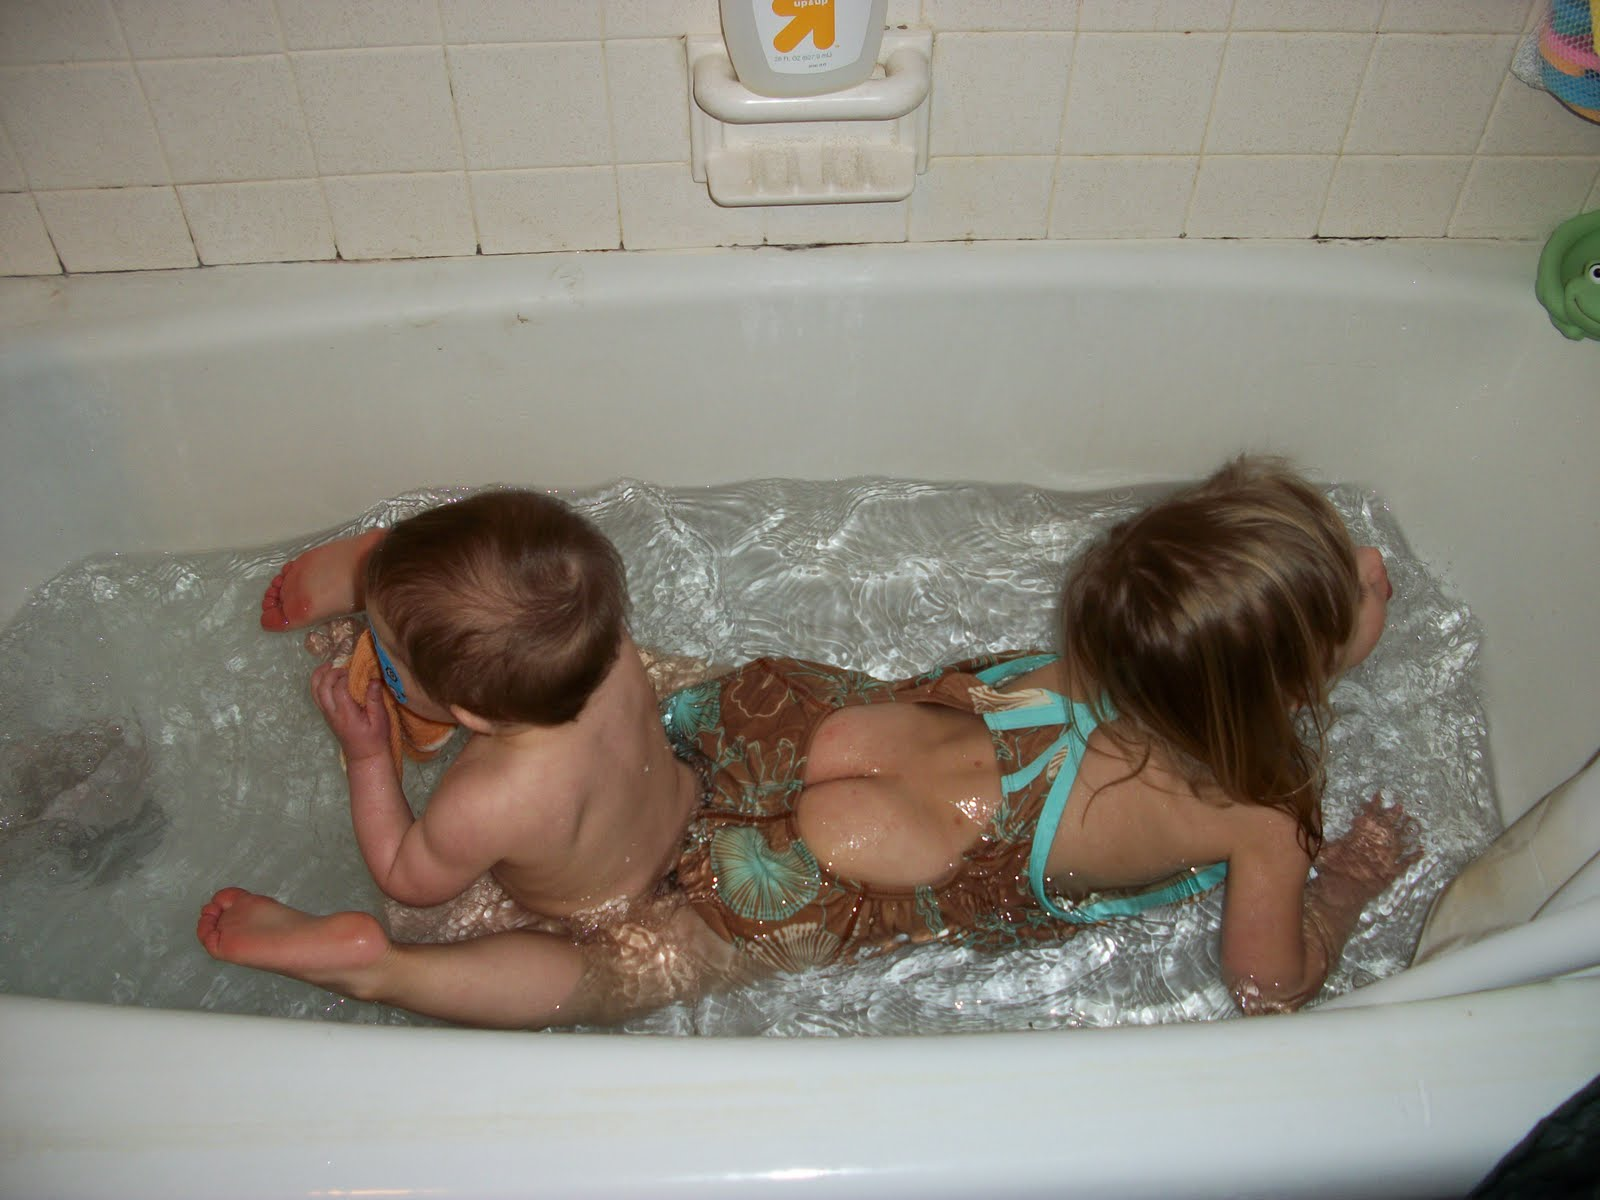 A little boy and girl are in a bathtub, and are  because they